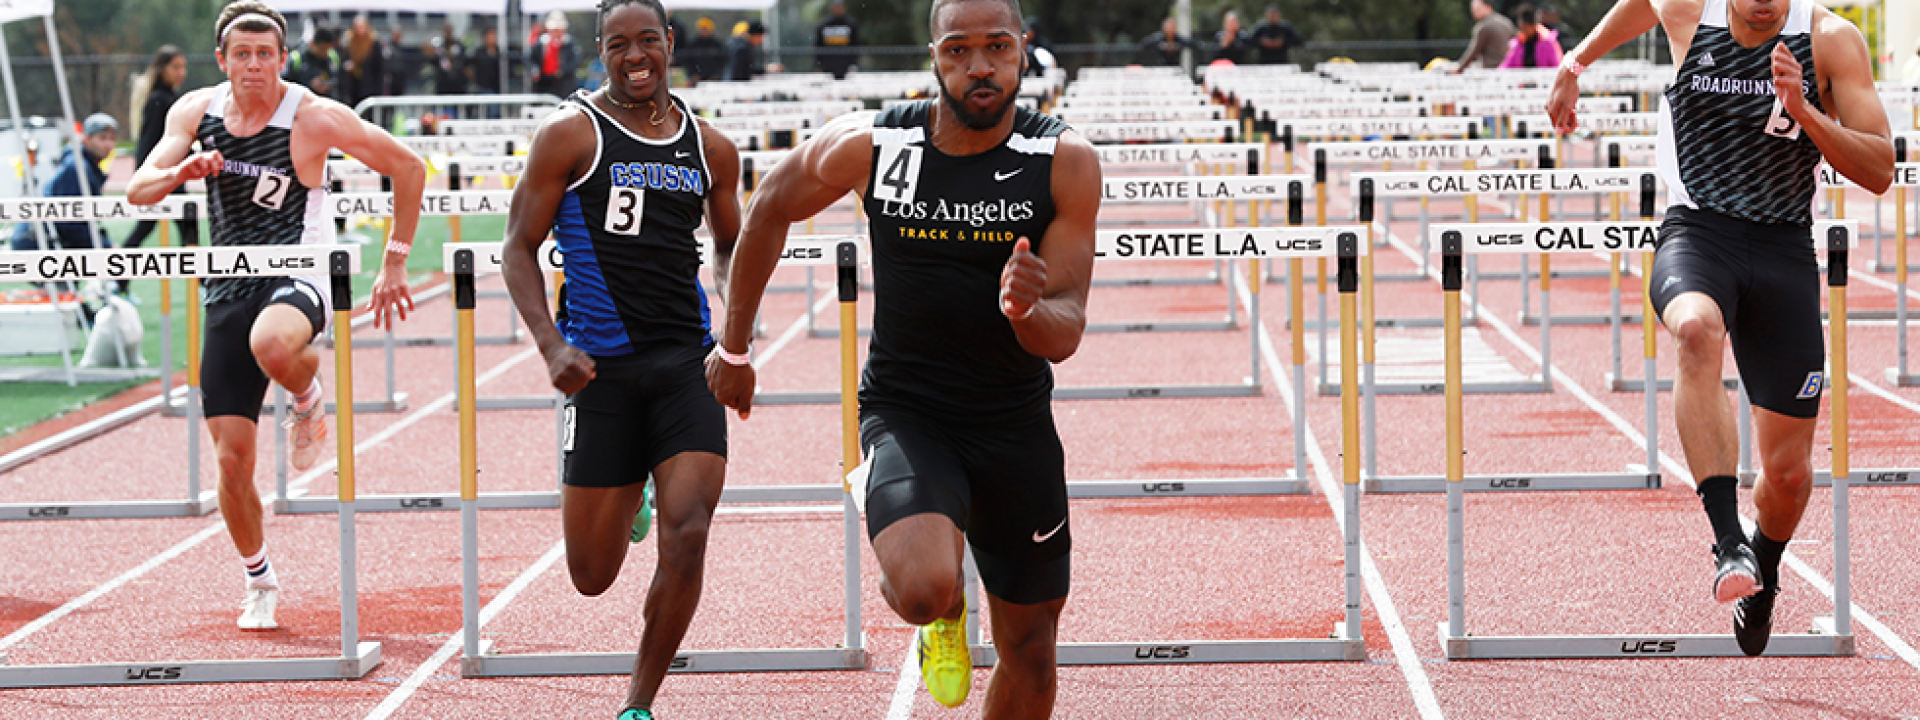 Image of a Cal State LA track star leading a hurdle race.